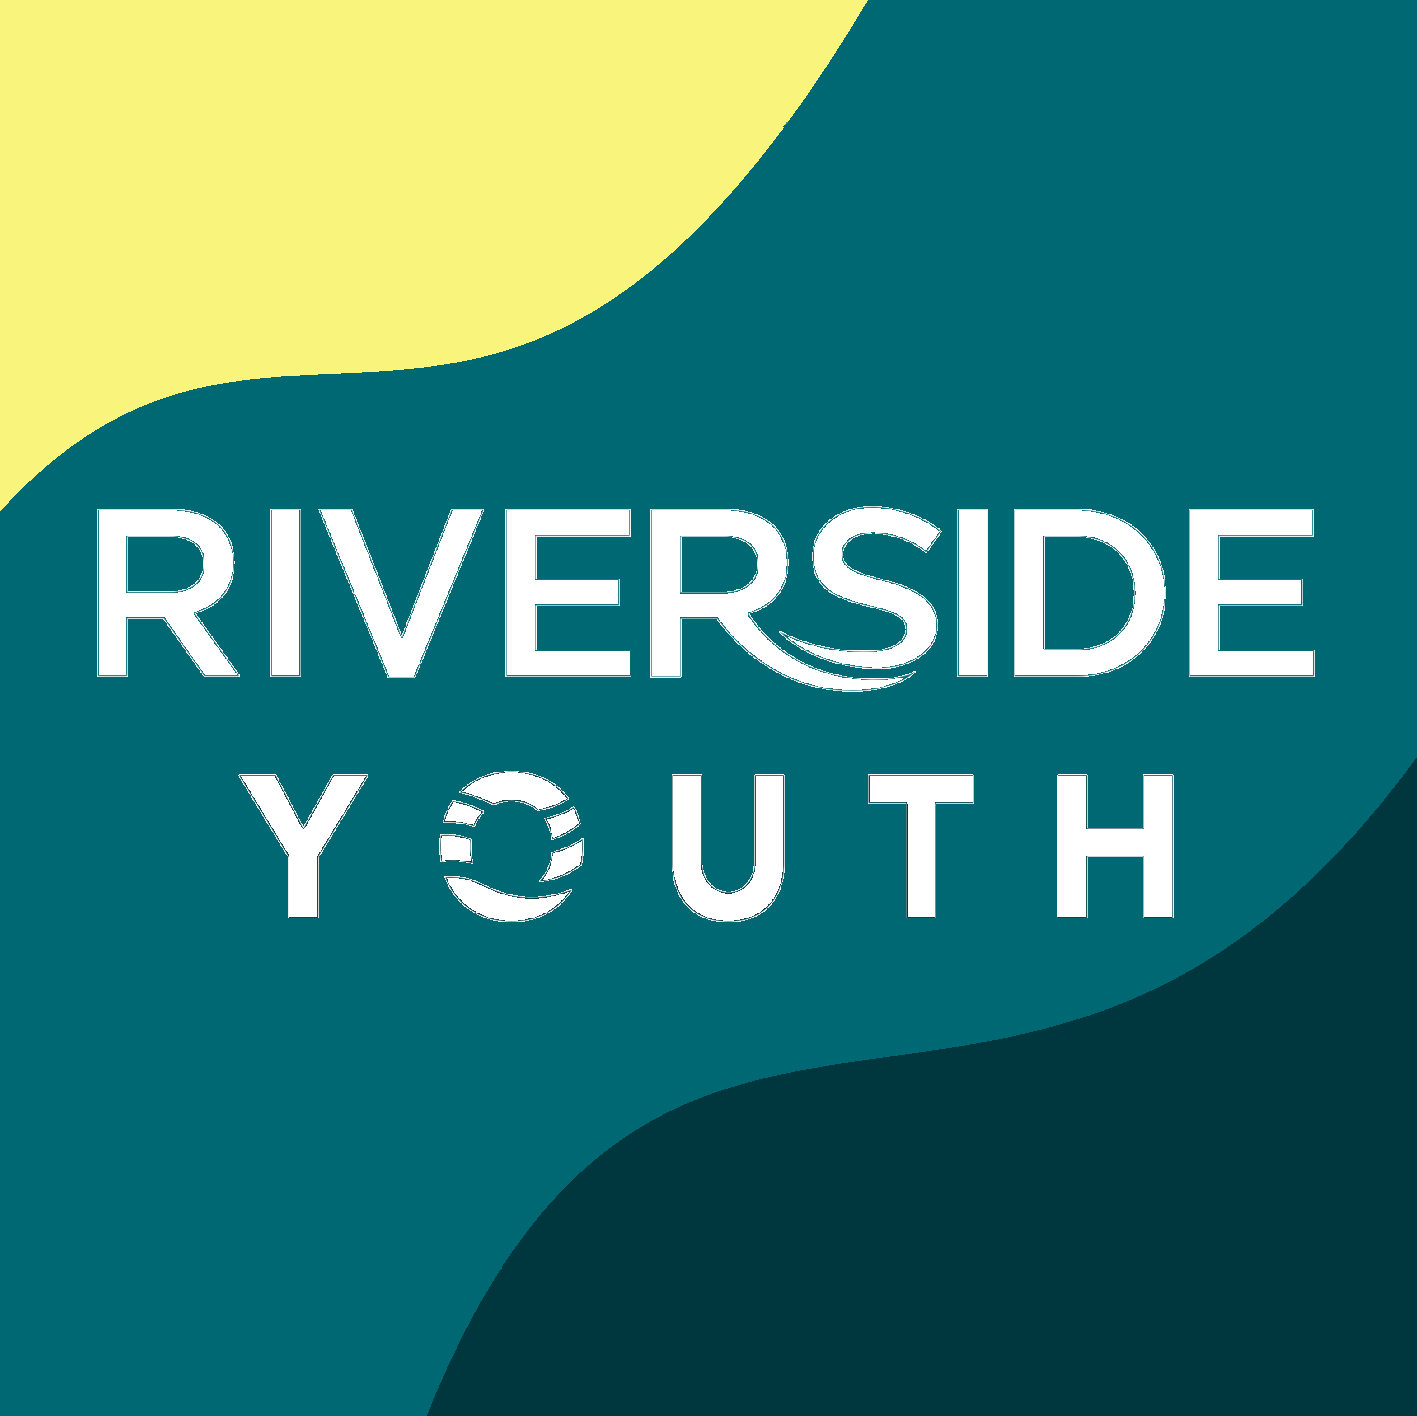 Square ruversdue youth 3